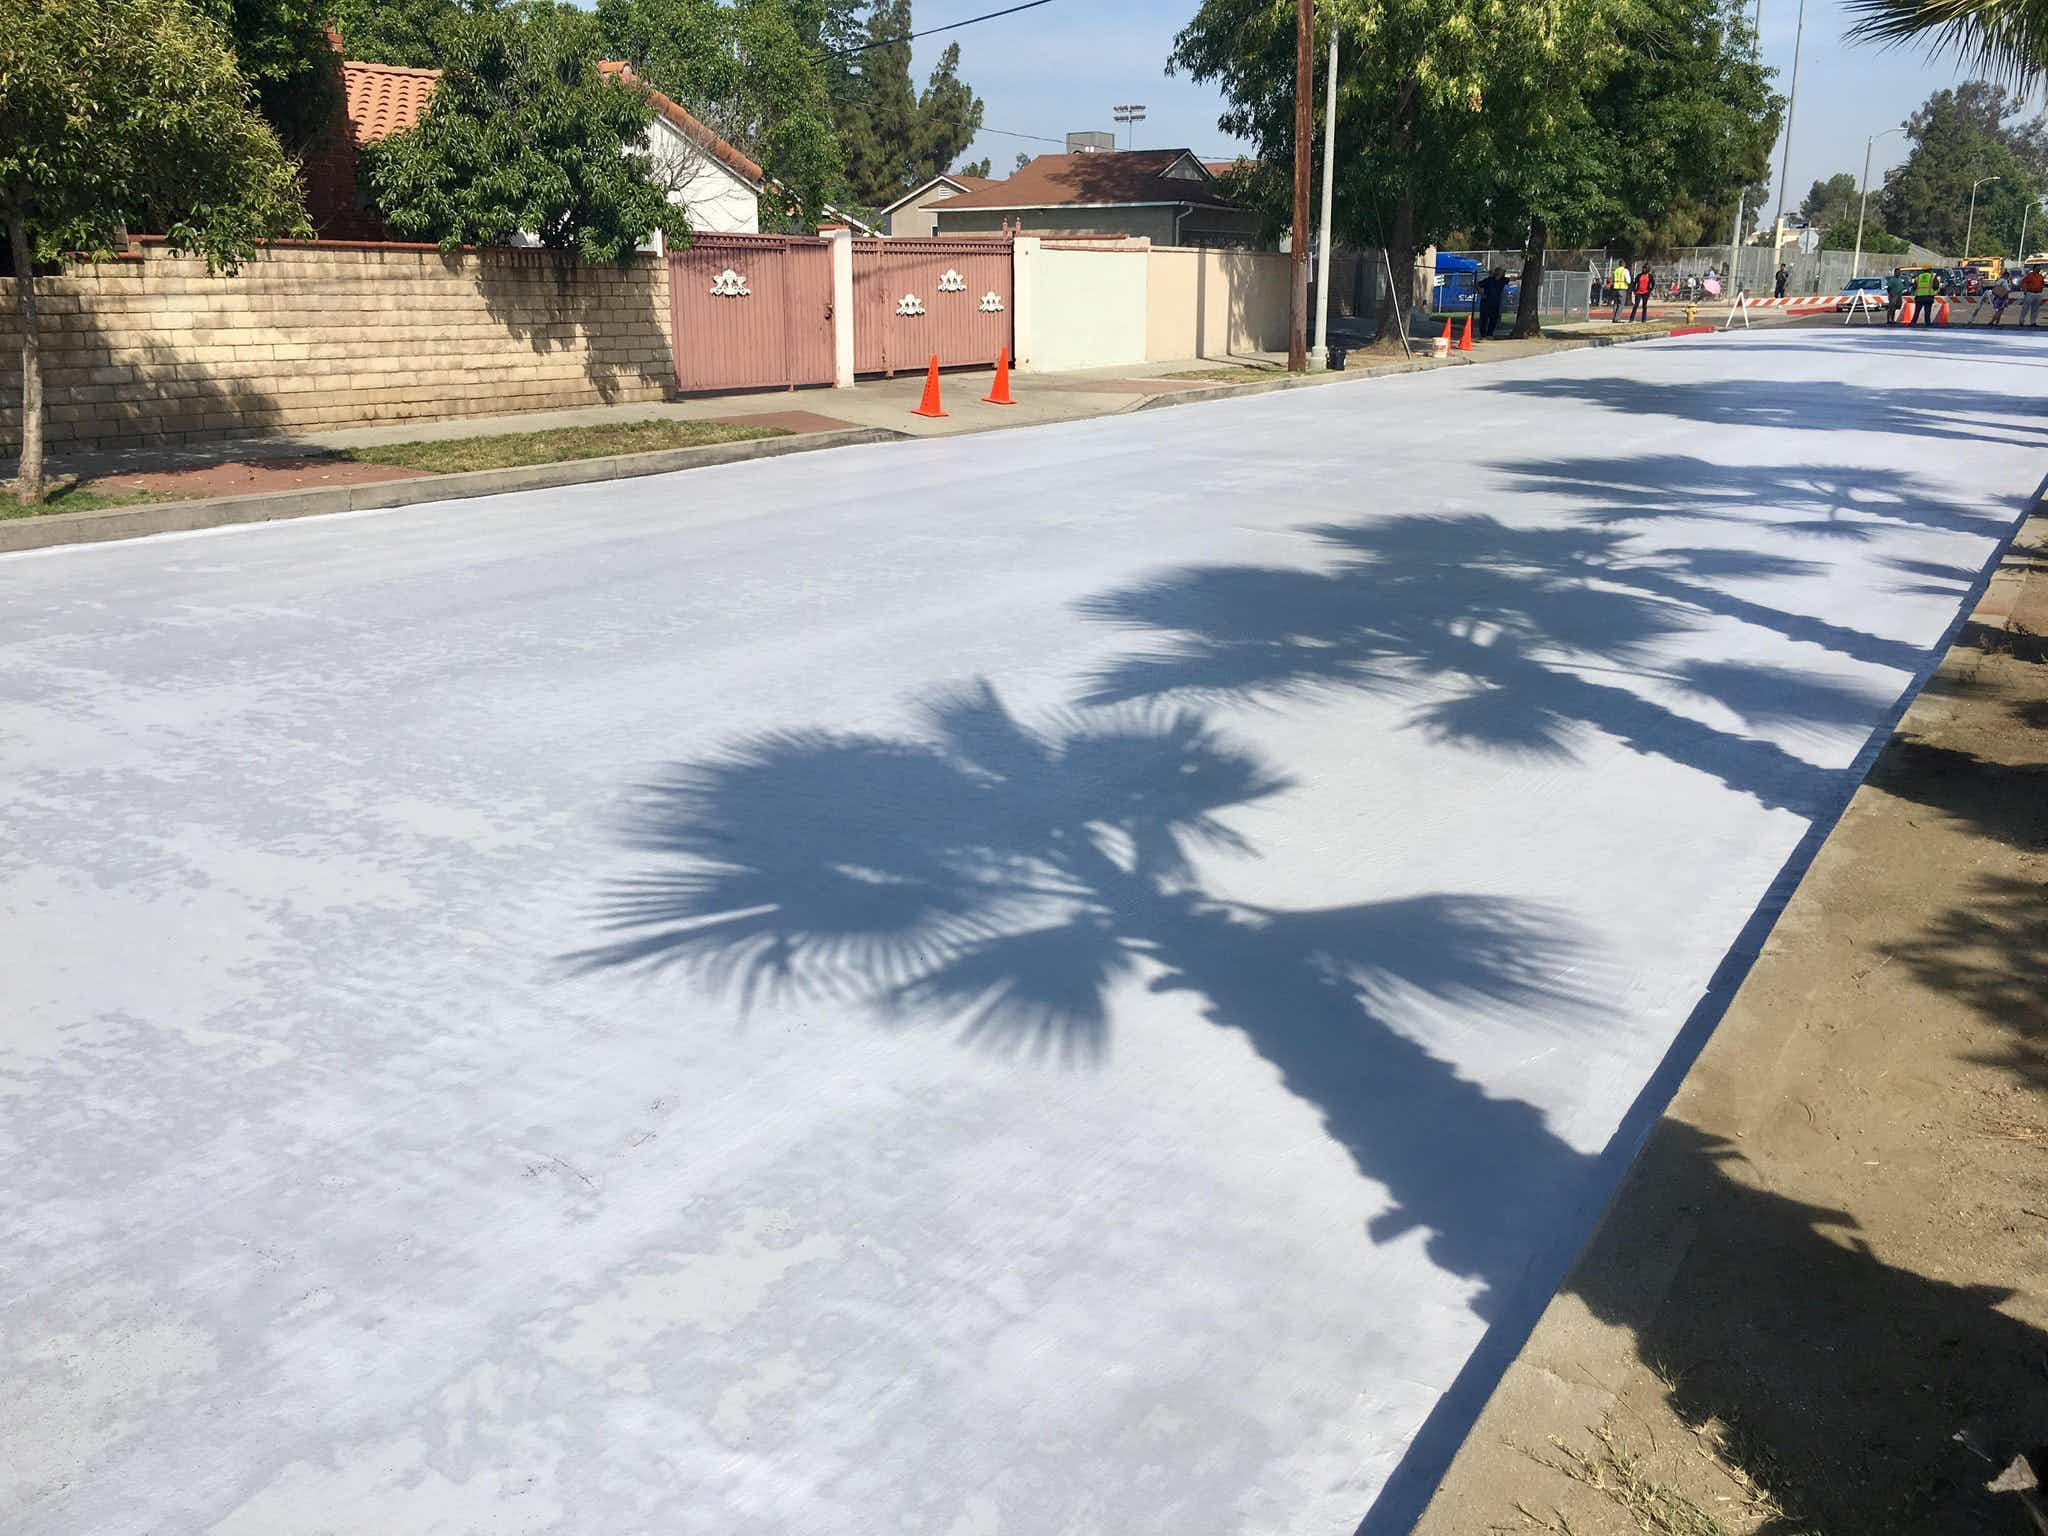 LA paints the streets white to cool them down in soaring summer temperatures